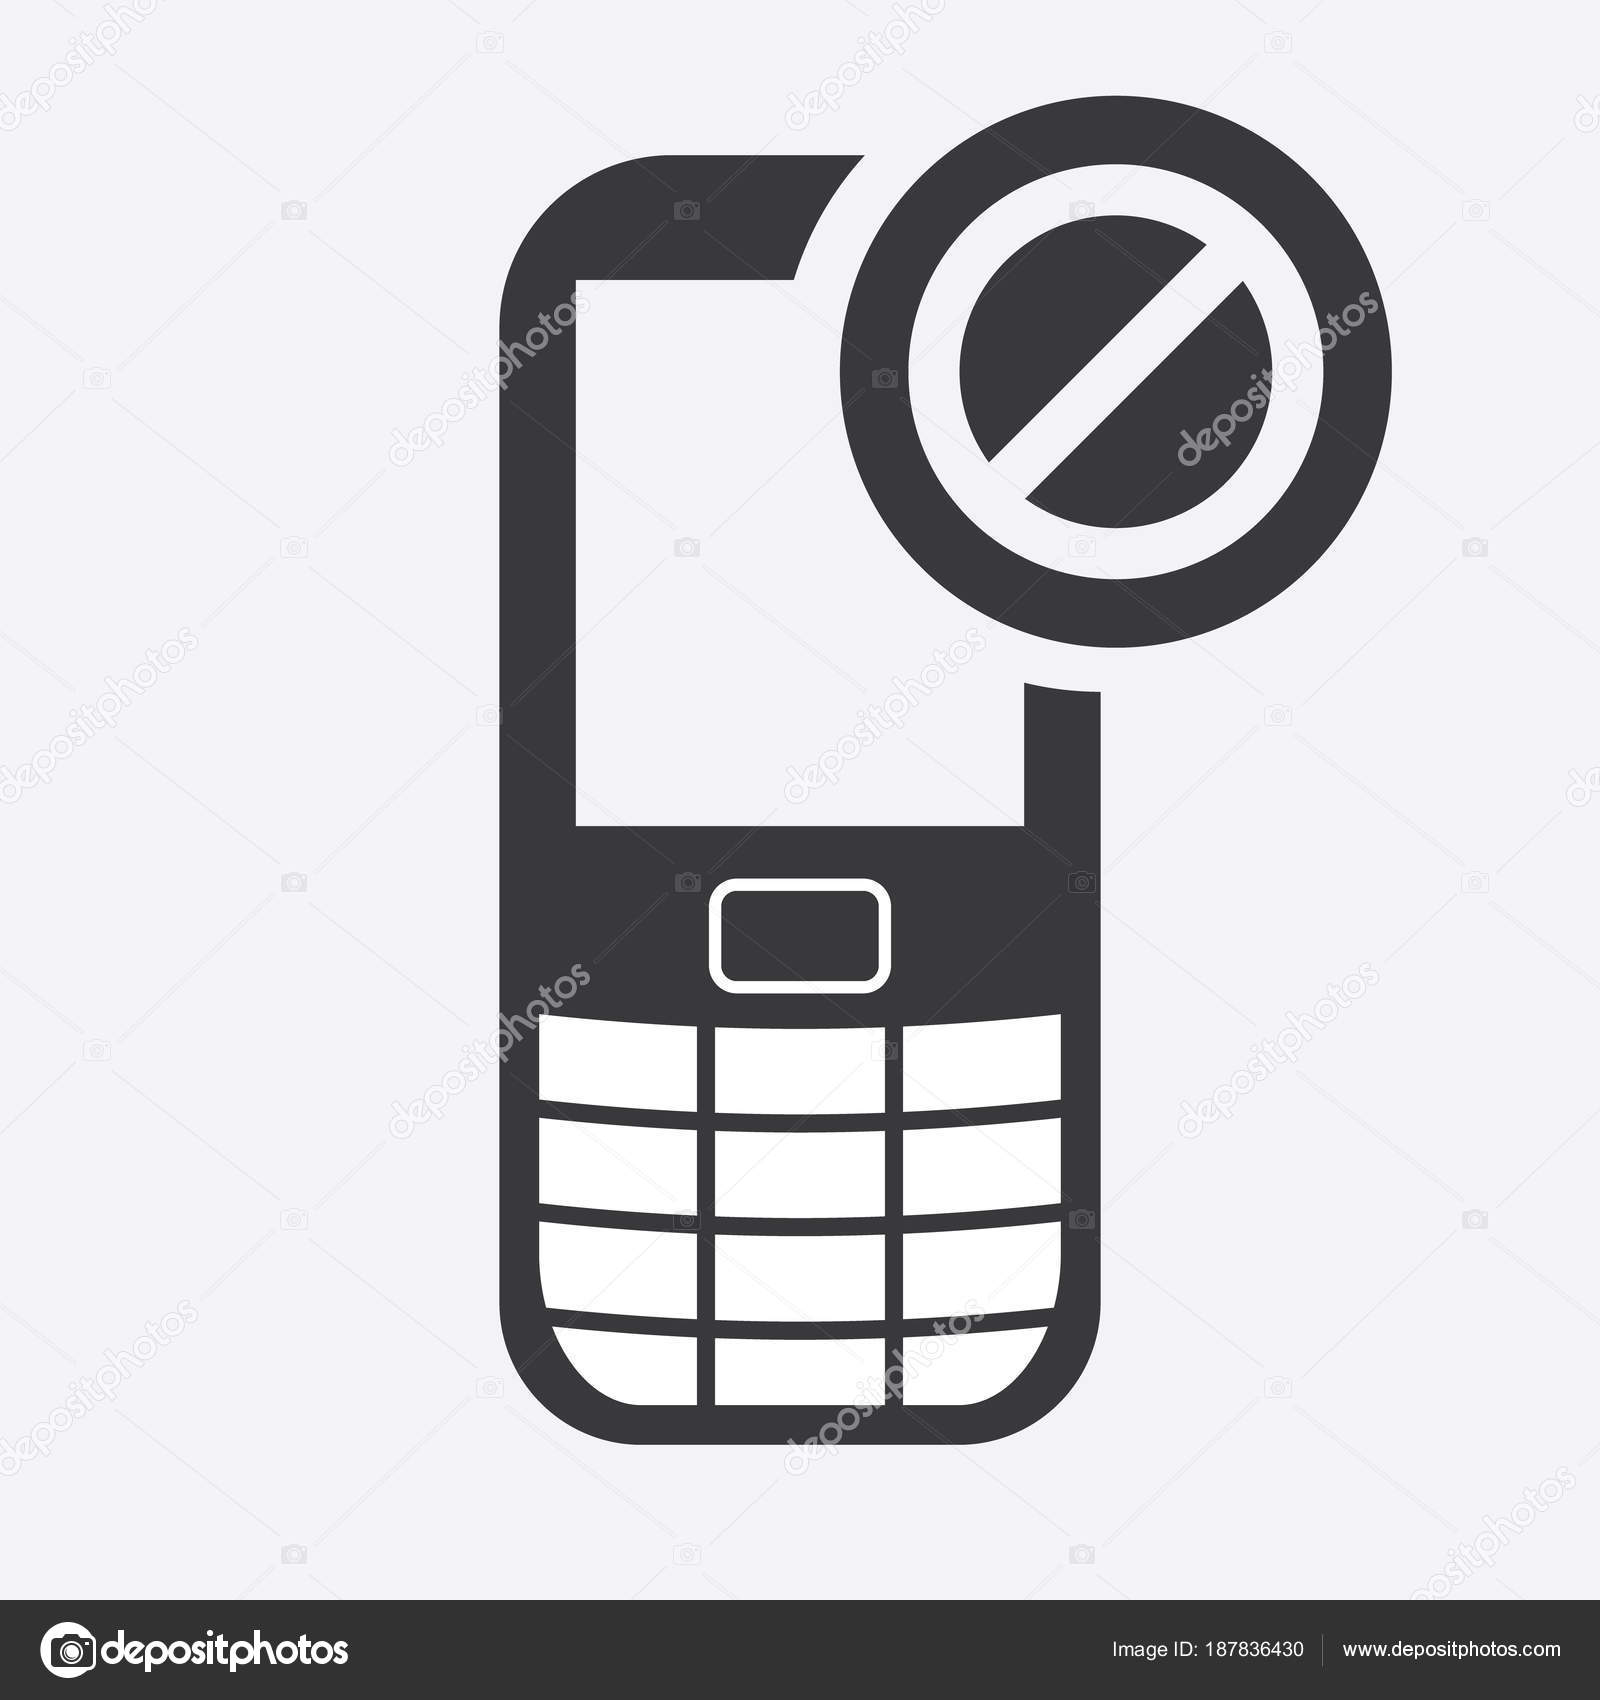 Cell phone icon with not allowed sign. Cell phone icon and block ...